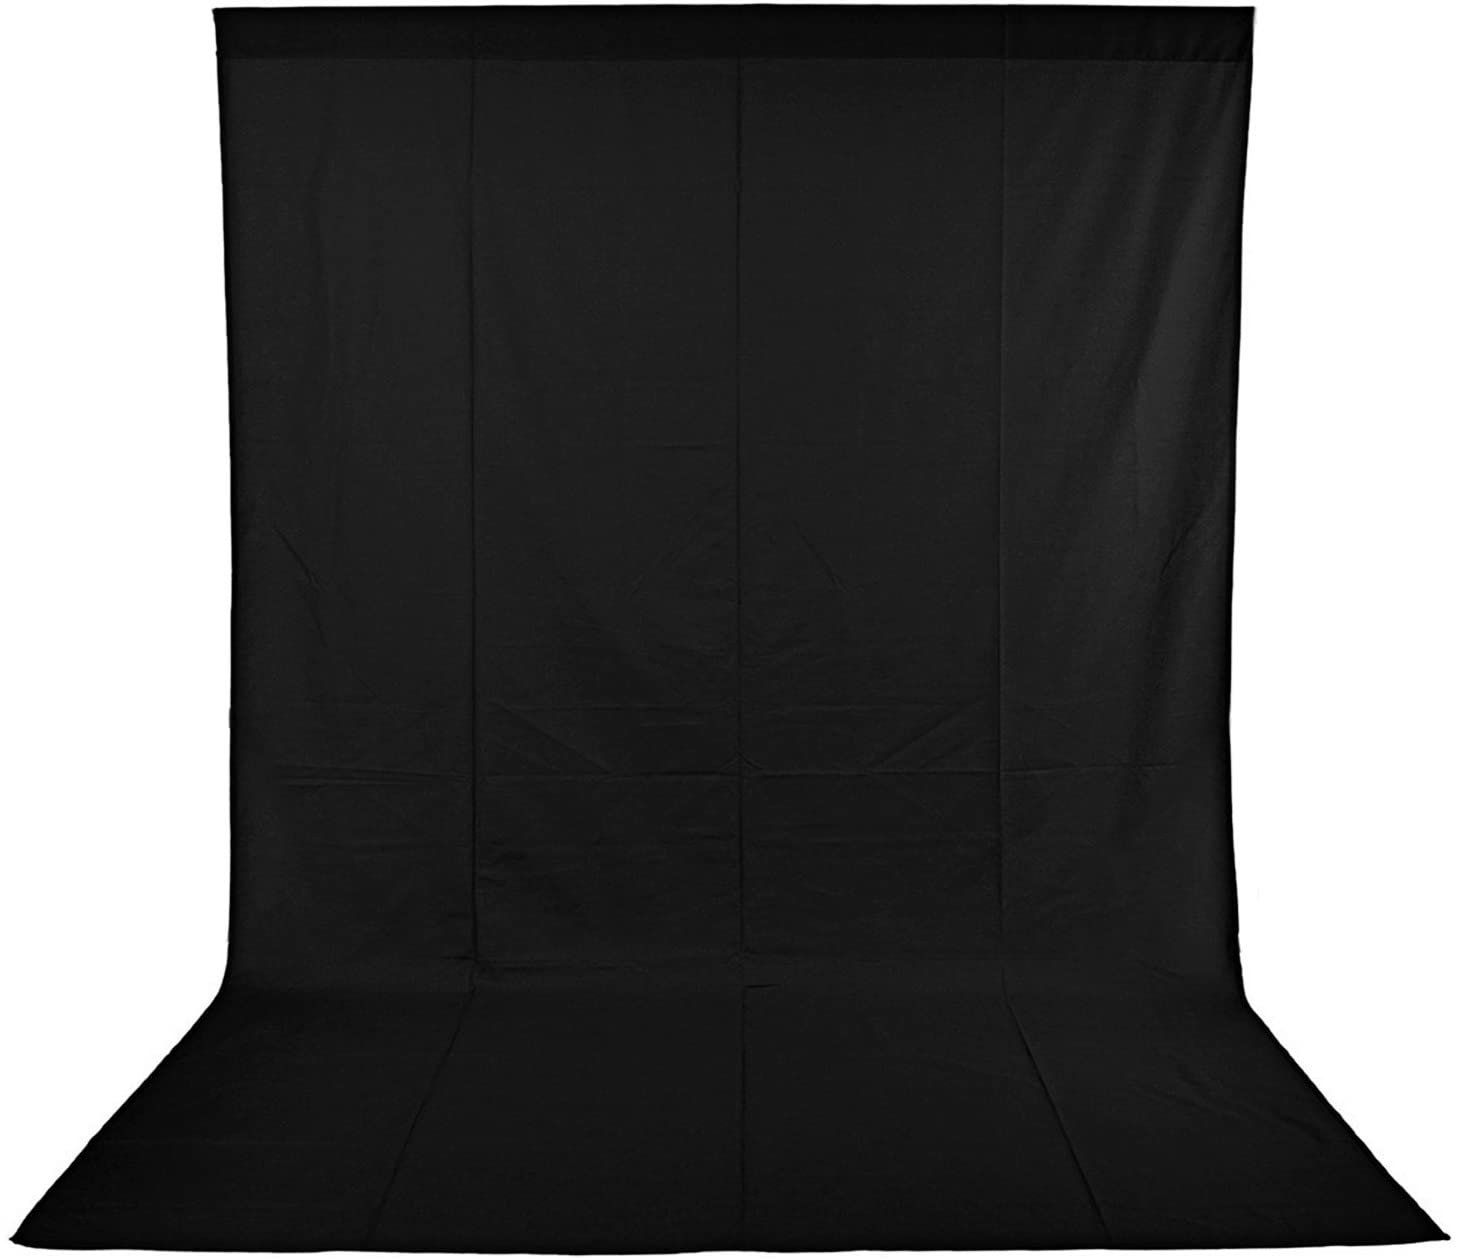 Black Photography Muslin Background